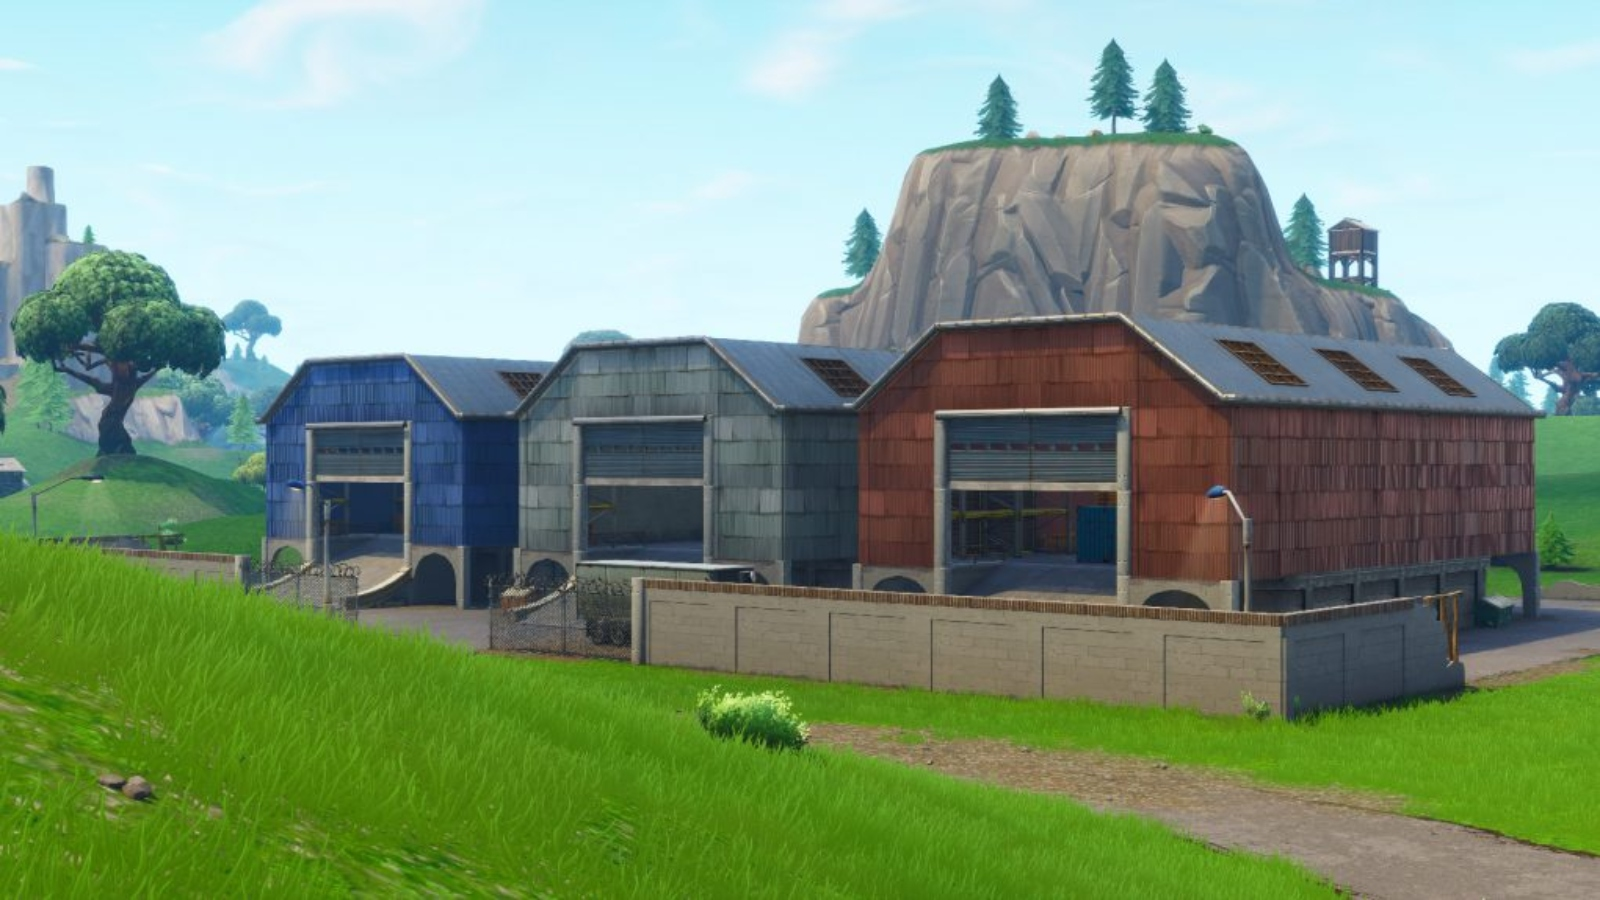 The Top 5 Removed Locations In Fortnite Fortnite Intel It appeared in the season x battle pass , and continuing with the season's theme of bringing back old elements of fortnite, it is the original lobby music which played in early seasons of the game. the top 5 removed locations in fortnite